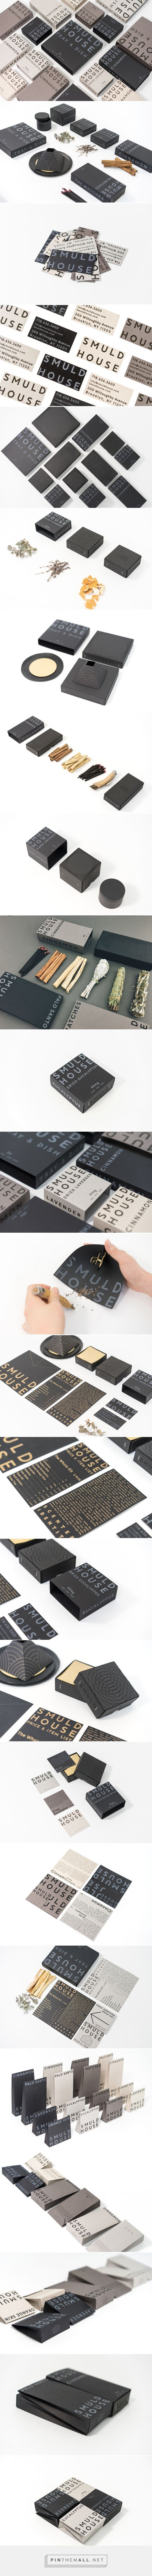 SMULD HOUSE Branding by Tai Chen | Fivestar Branding Agency – Design and Branding Agency & Curated Inspiration Gallery #packaging #branding #packagedesign #brand #design #typography #designinspiration